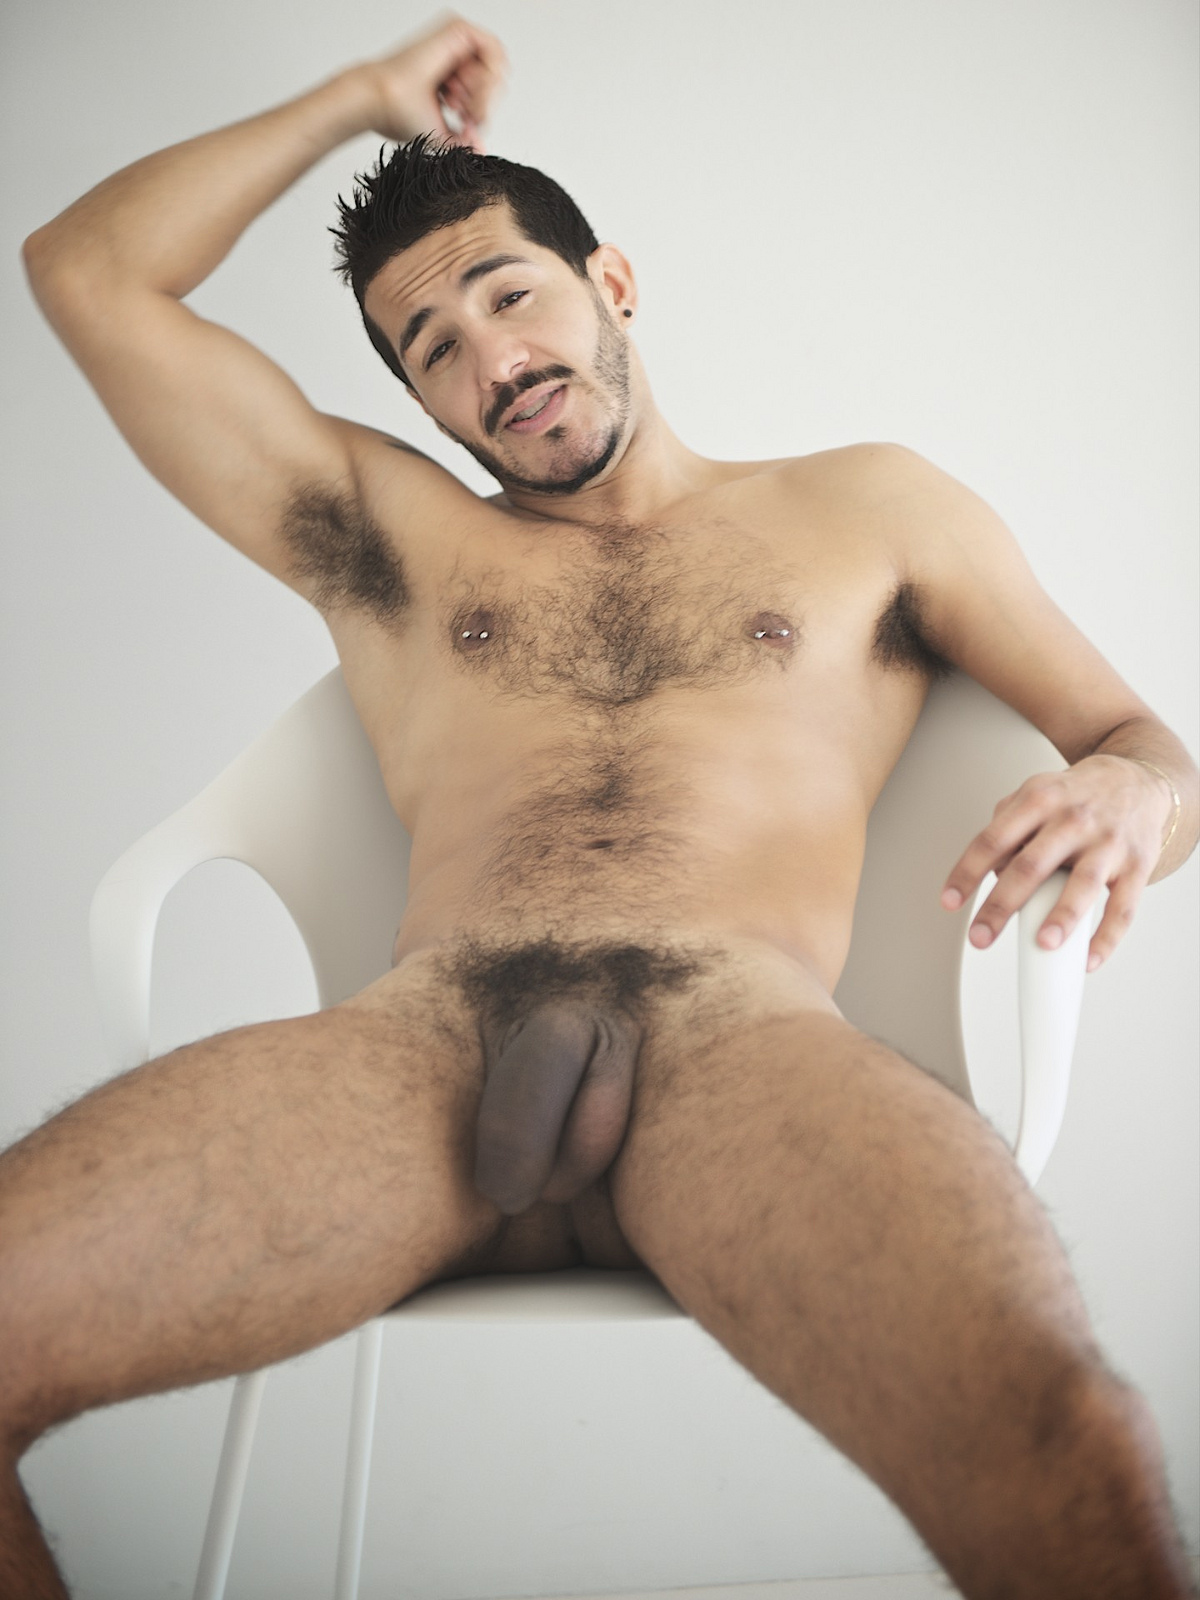 Latino Hot hairy men naked